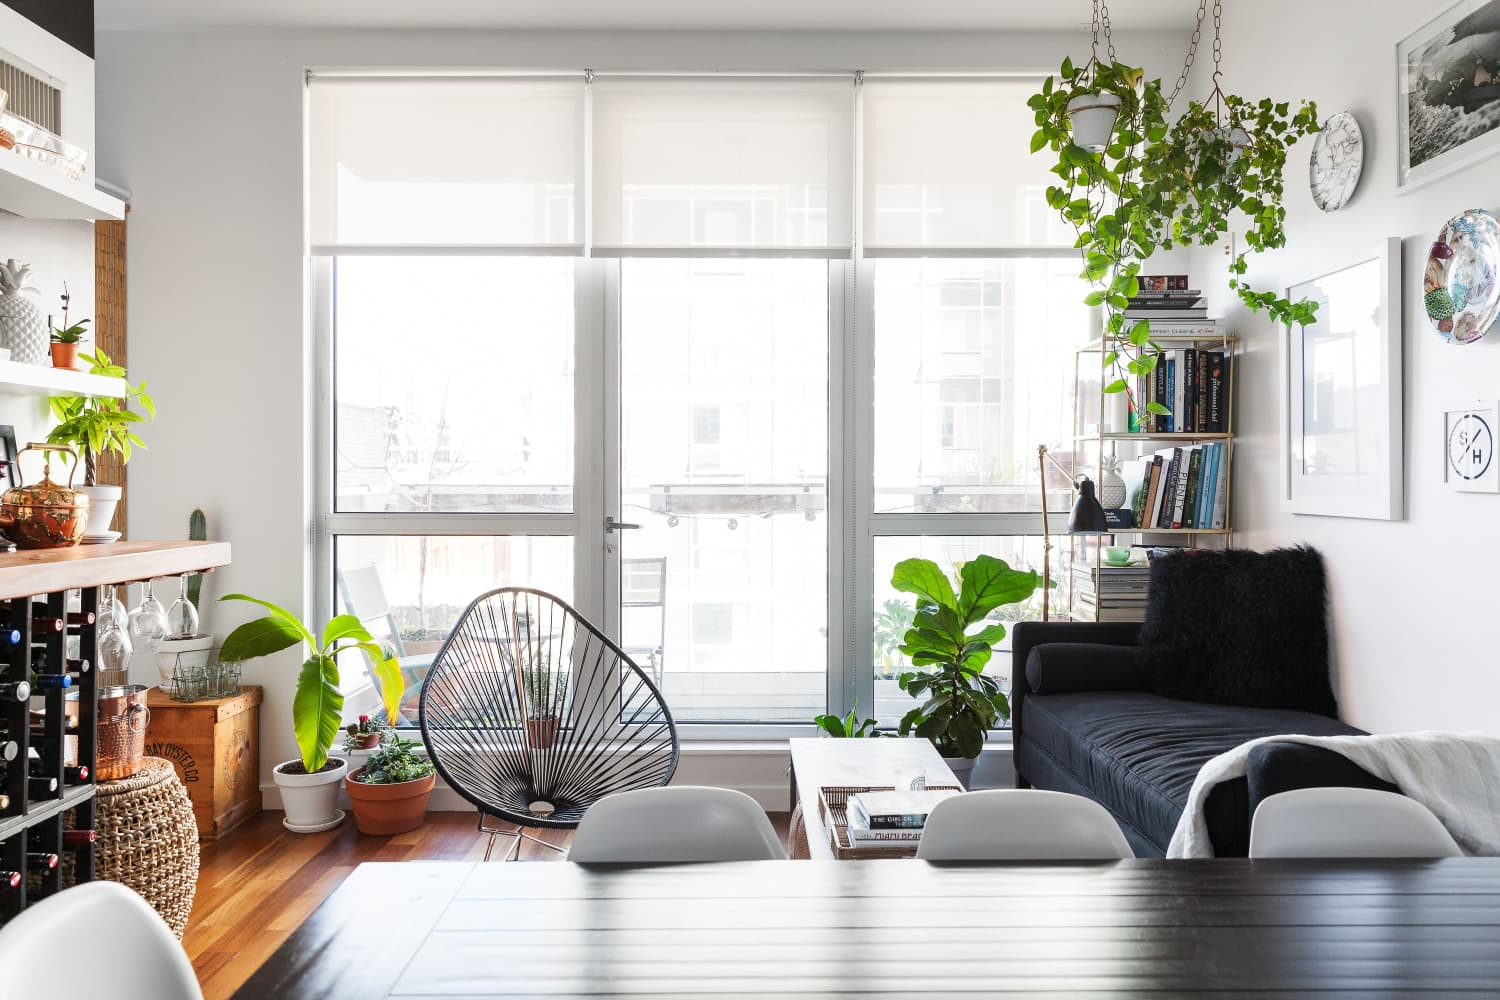 These 6 Things Can End Up Wasting Your Money—So Rent Them Instead